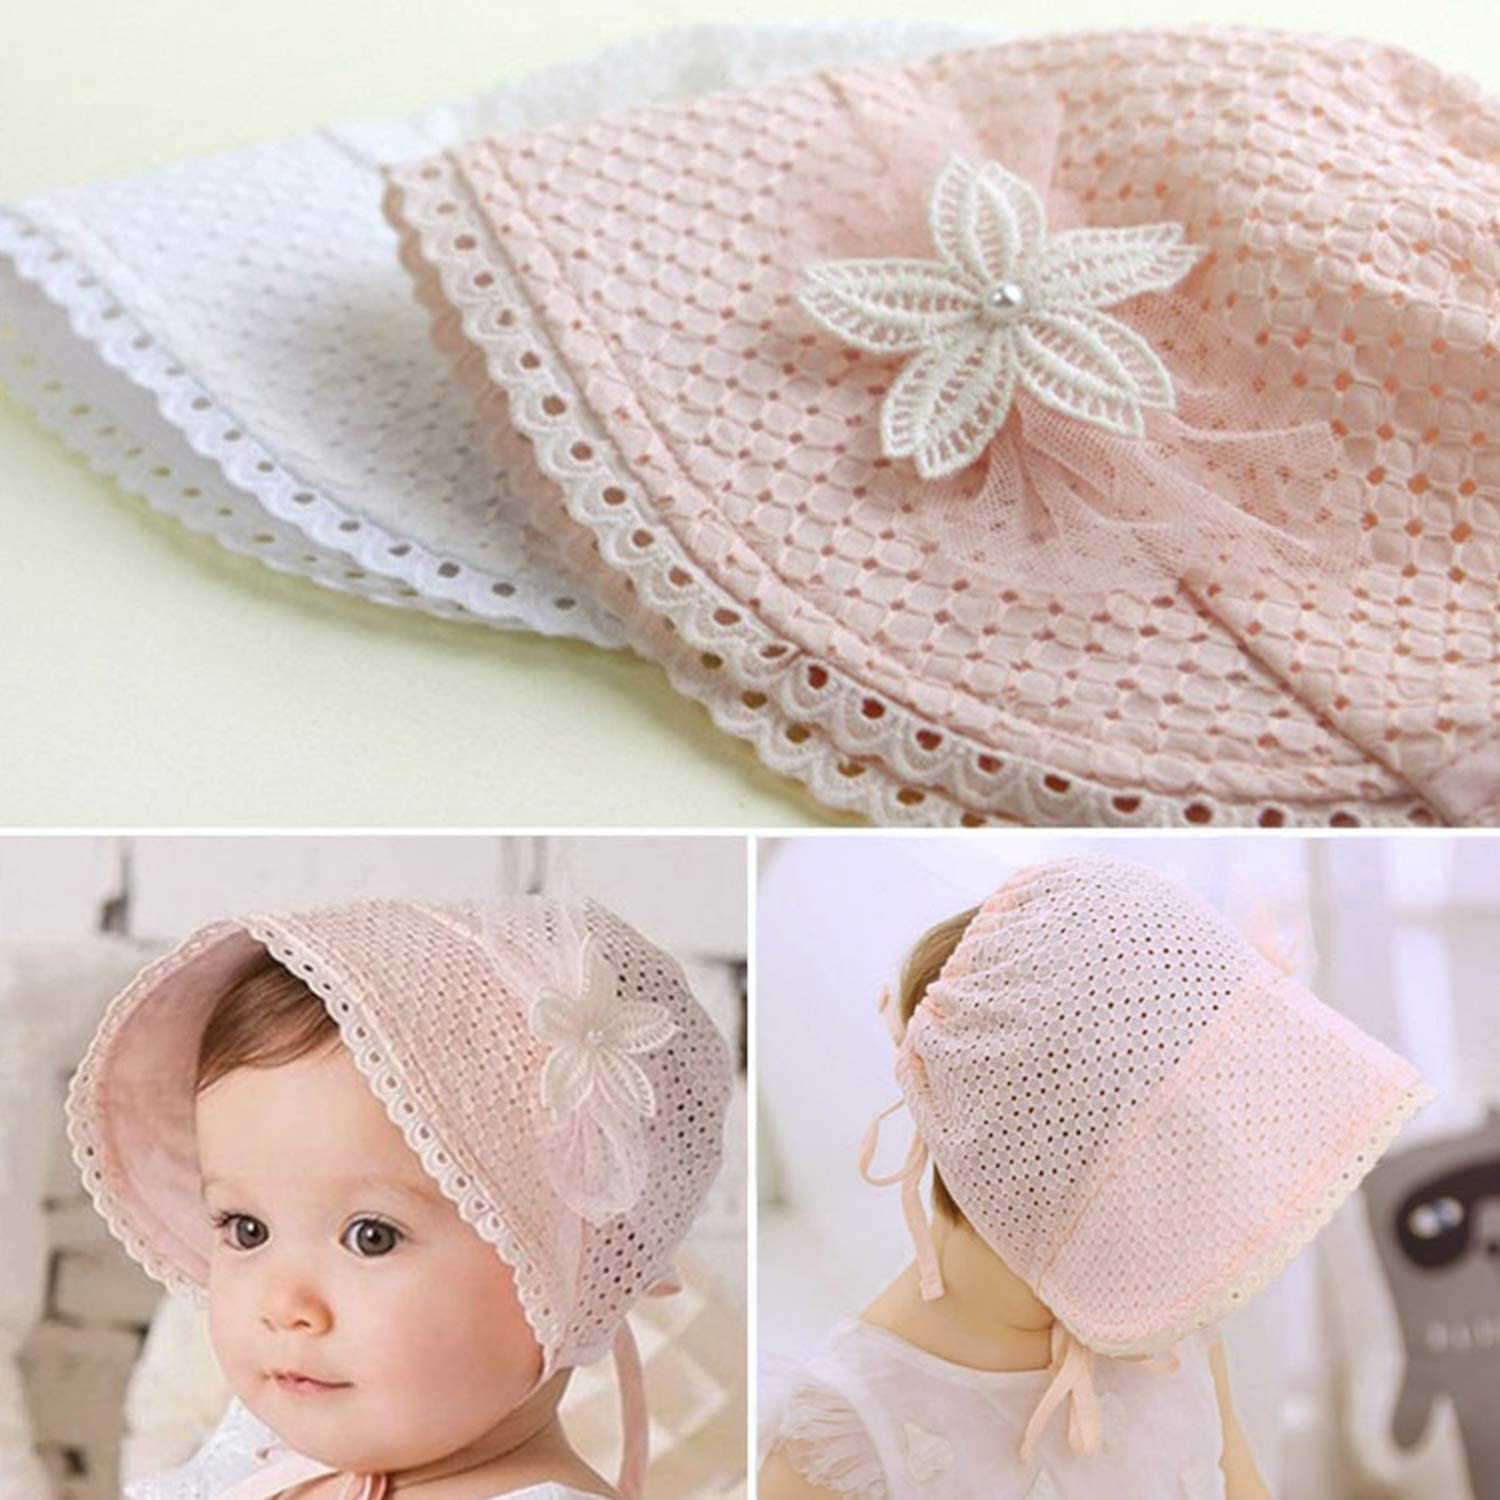 Baby Girls Summer Lace Eyelet Cotton Hat Classic Adjustable Sun Protection Cap